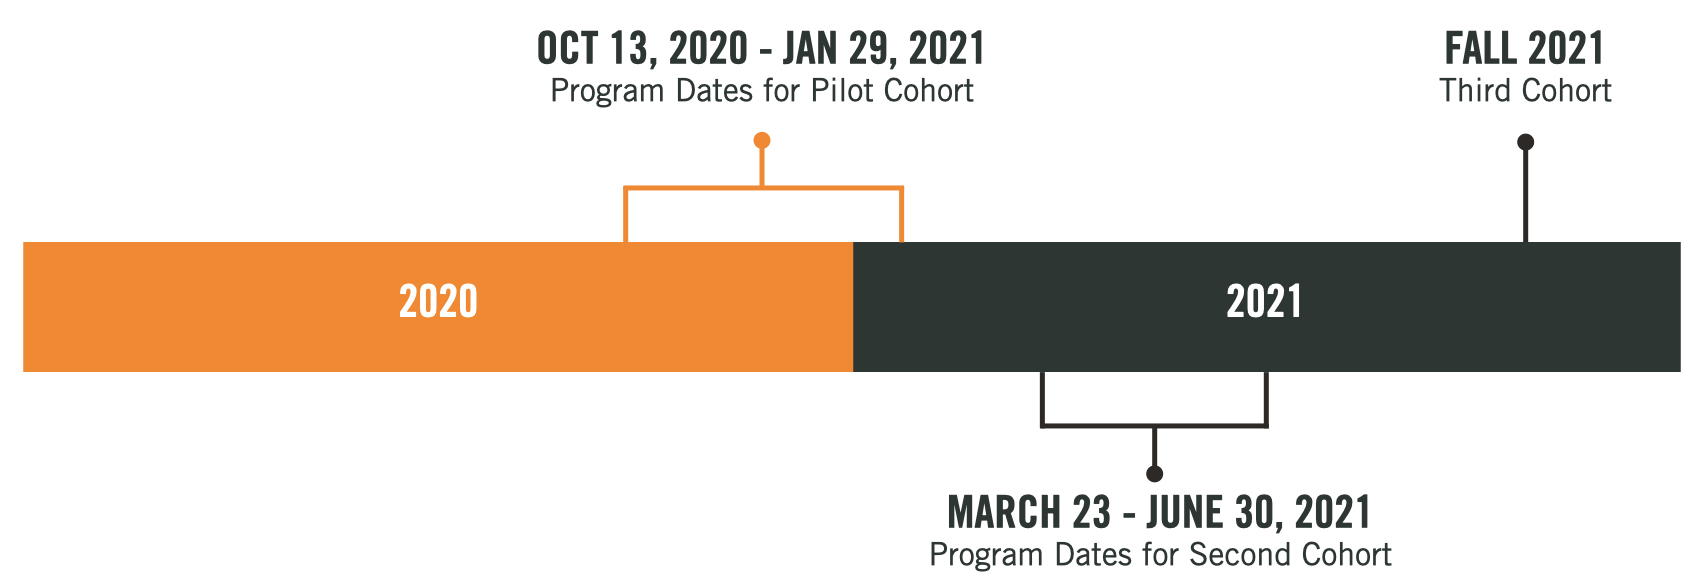 This is a line graph of the program's timeline. The program dates for the pilot cohort ran from October 13, 2020 until January 29, 2021. The program dates for the second cohort run from March 23, 2021 until June 30, 2021. There will be one more cohort in the fall of 2021.